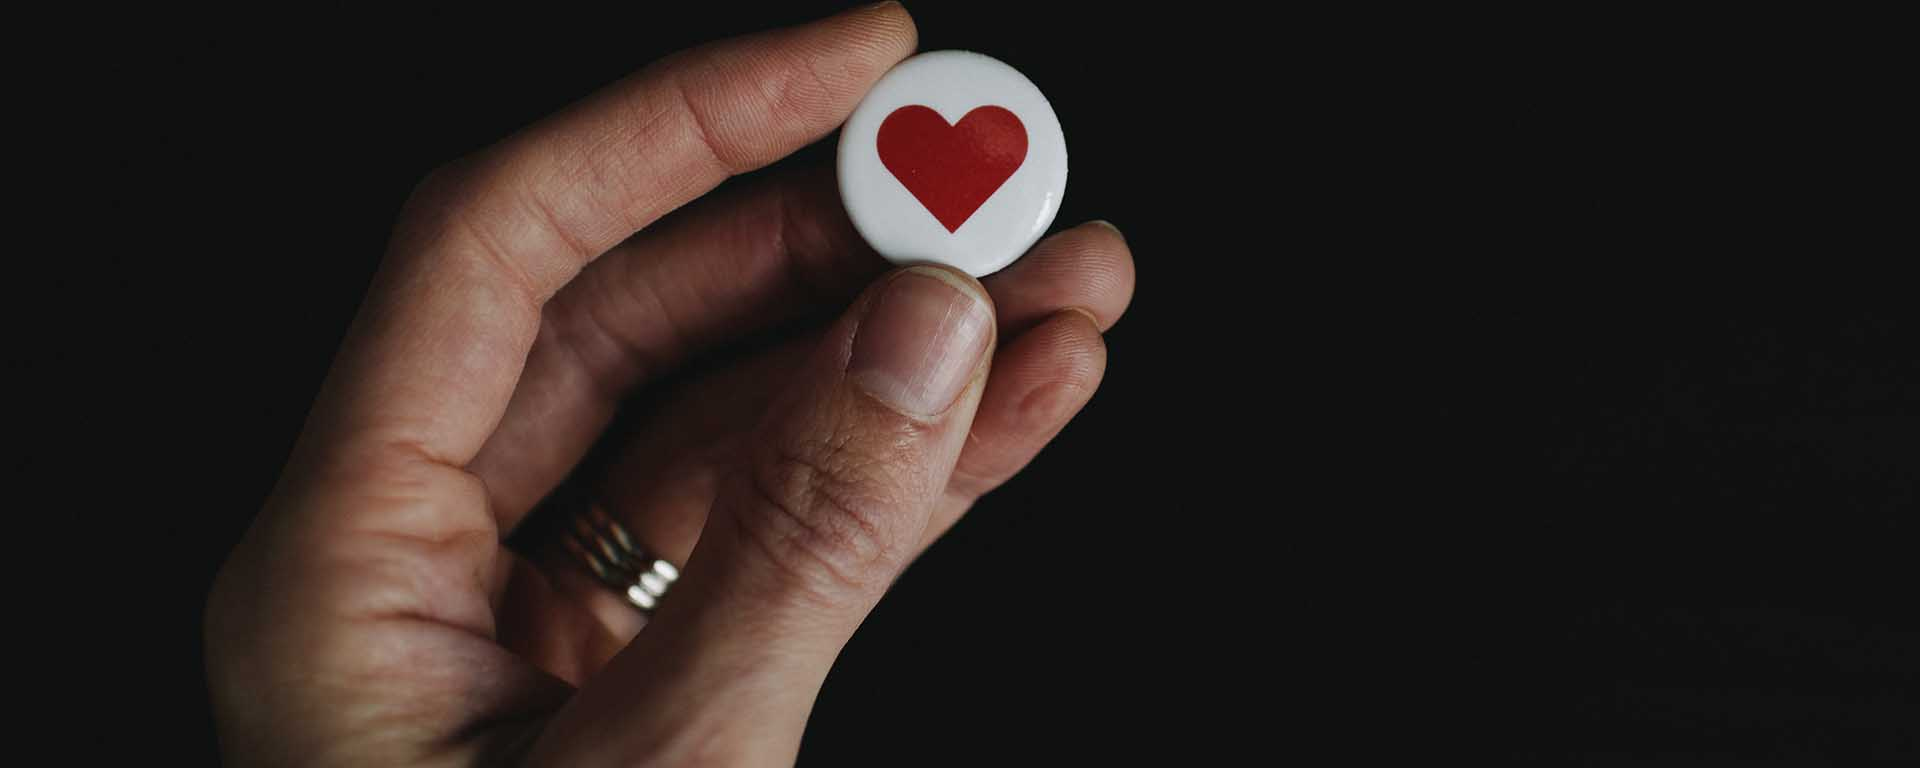 A hand holds up a white badge with a red love heart